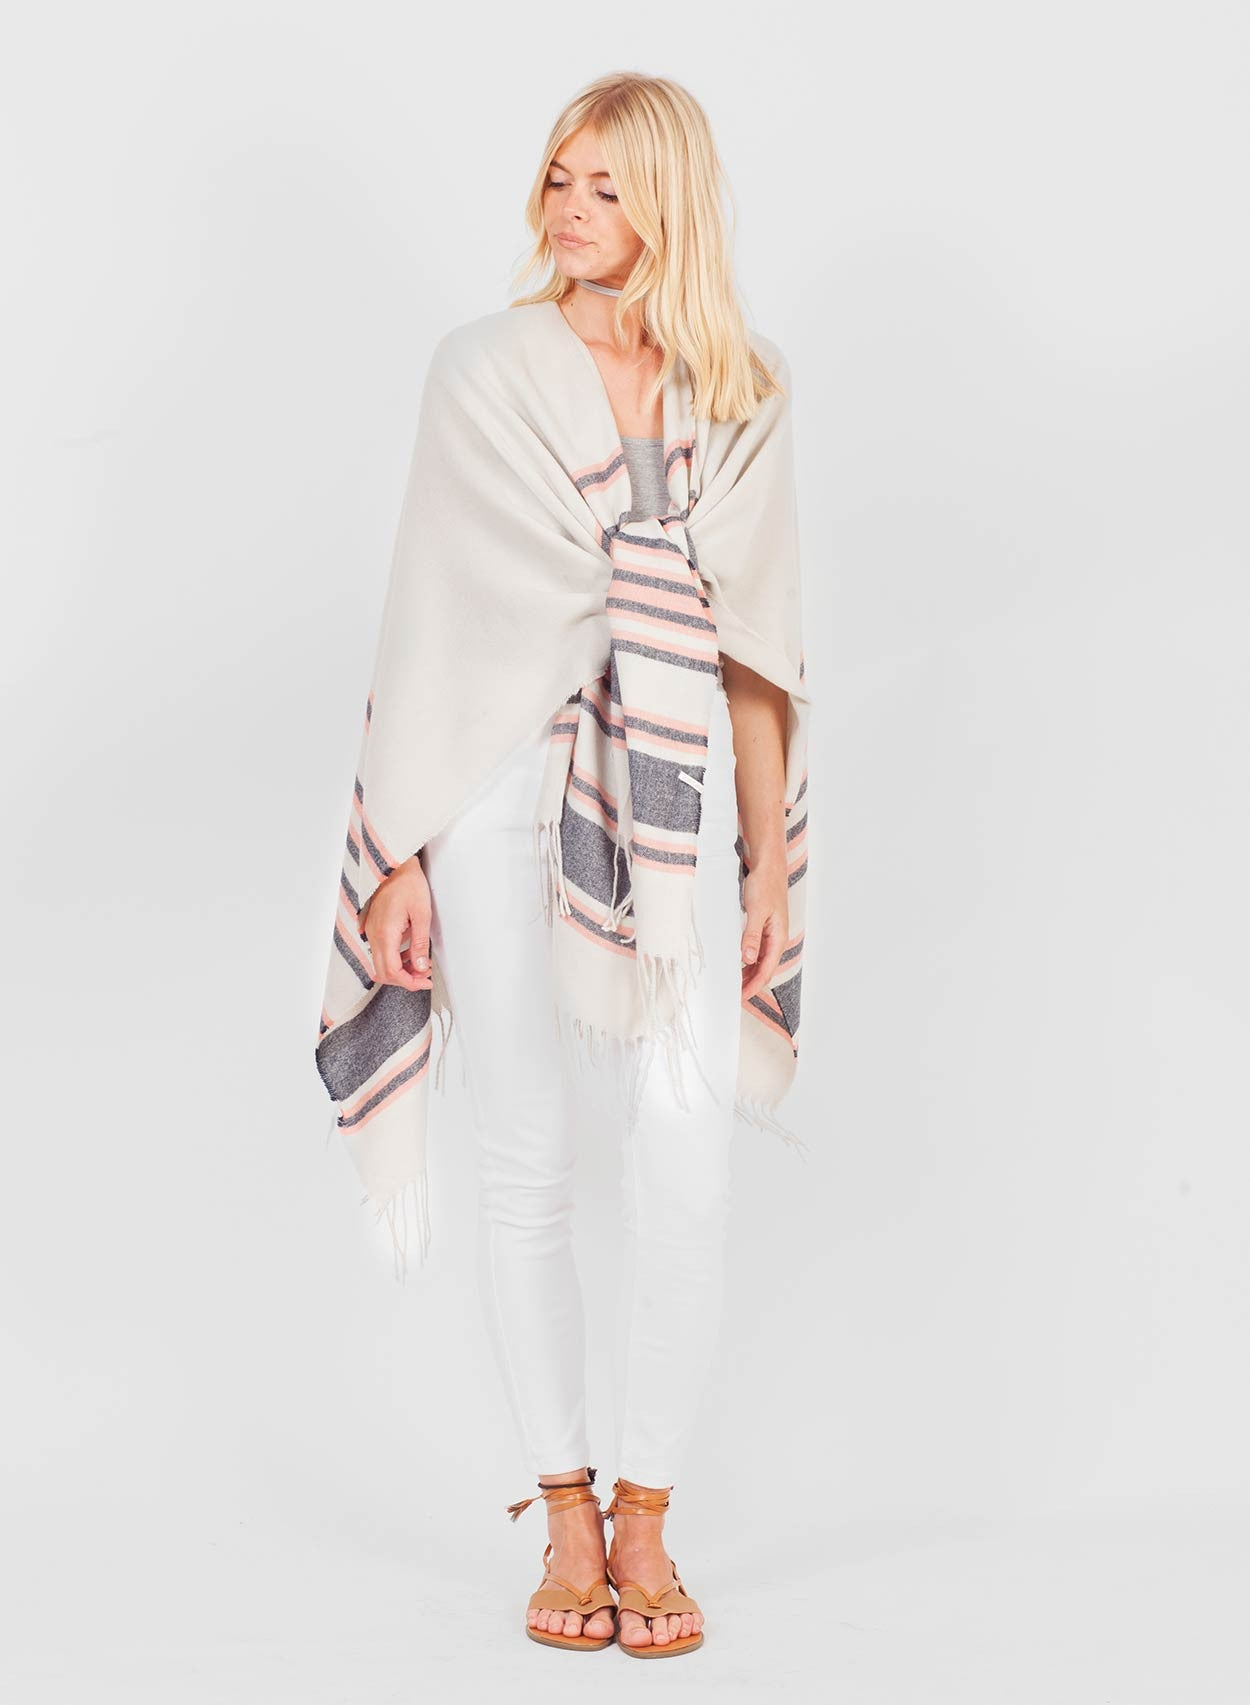 Super Soft White Blanket Cape - LoveClothing.com - 4